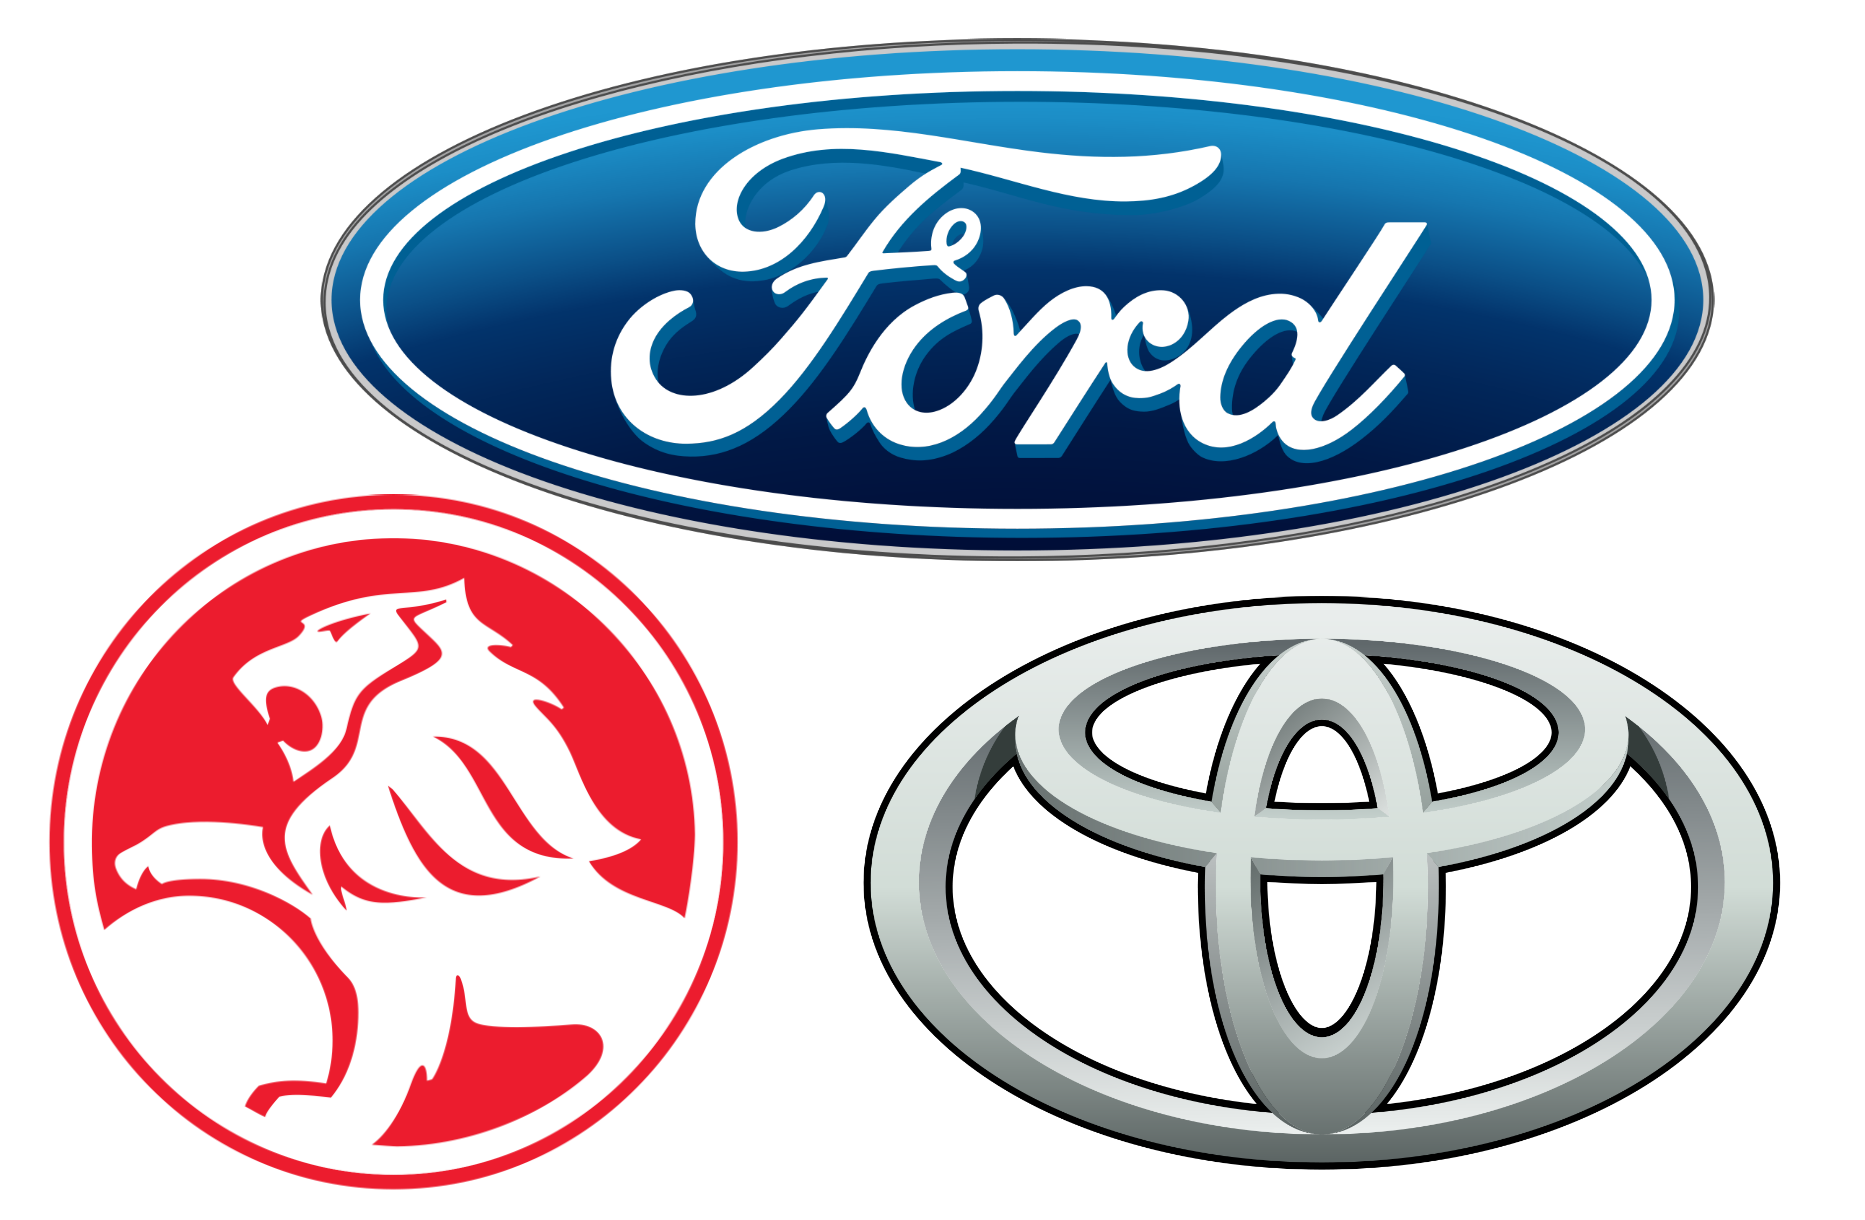 Australian car brands companies and manufacturers car brand australian car brands logos voltagebd Images